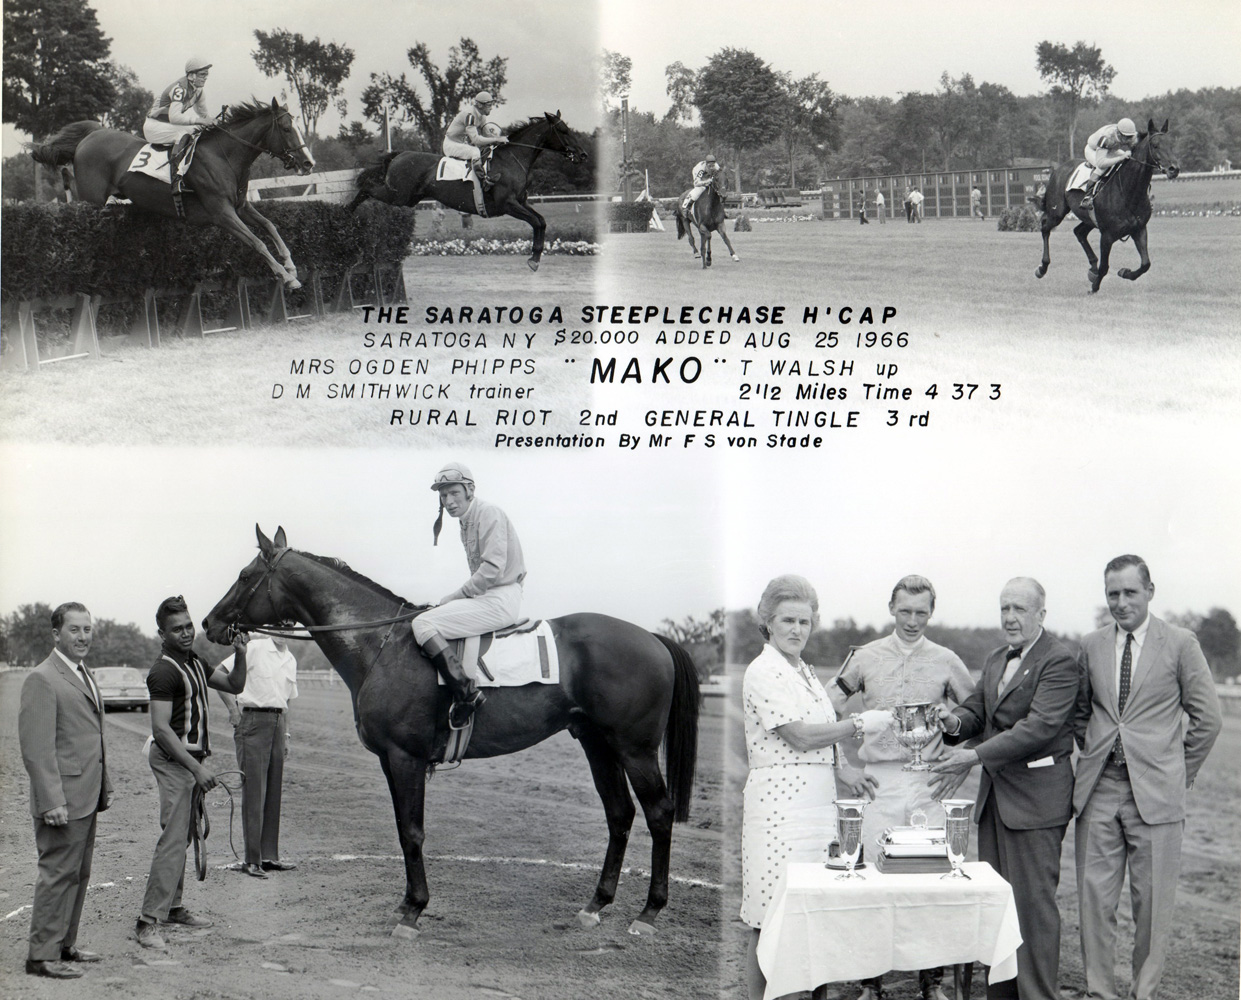 Win composite from the 1966 Saratoga Steeplechase Handicap at Aqueduct, won by Tommy Walsh and Mako (NYRA/Museum Collection)